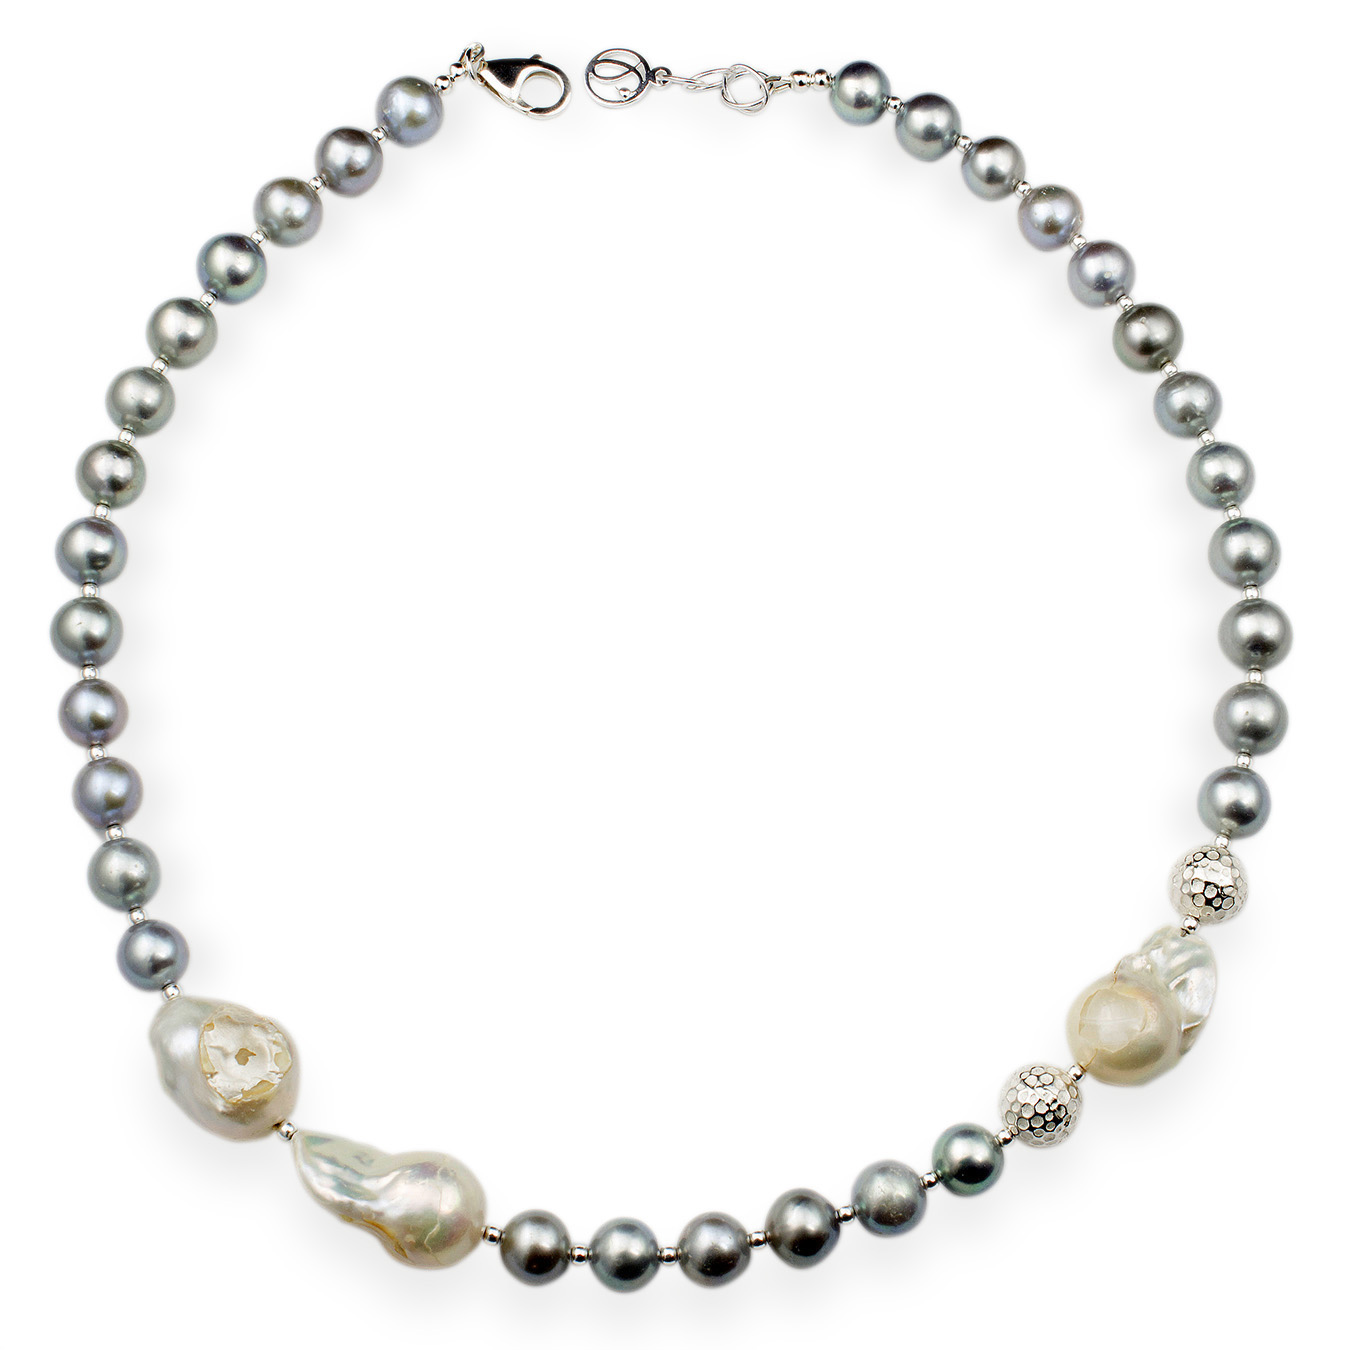 Custom necklace with choice of cultured AA pearls and nucleated bead